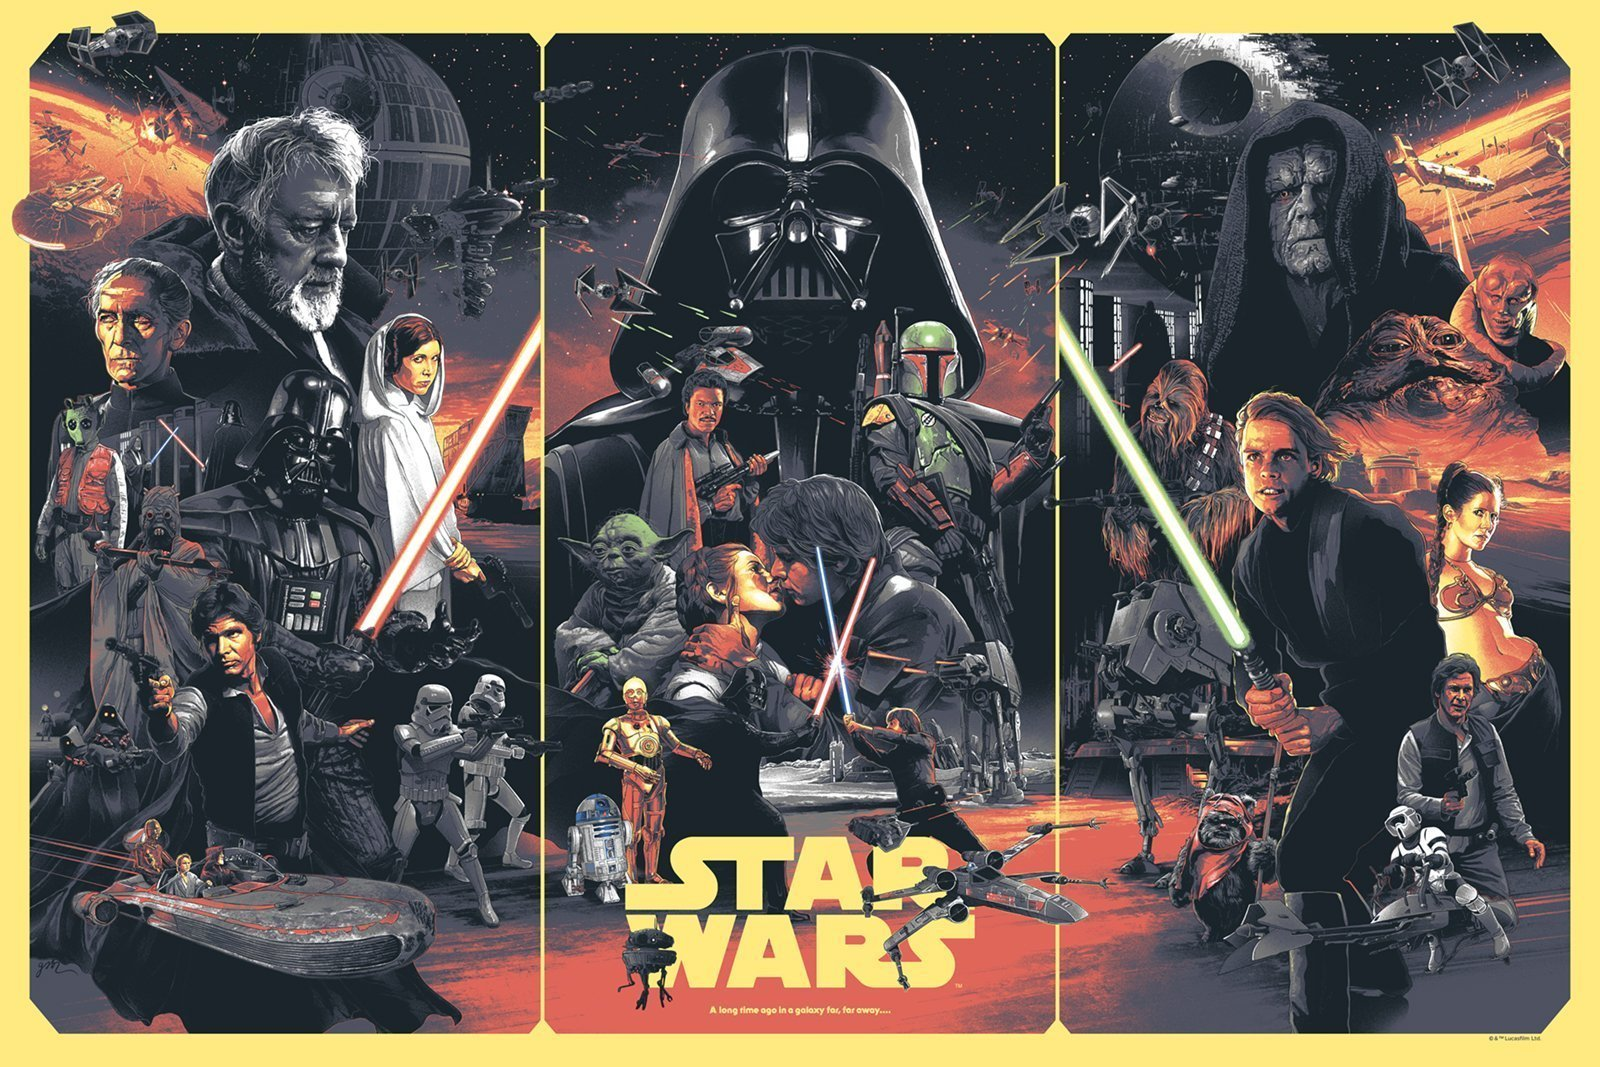 Version alternative du poster de Star Wars par Grzegorz Domaradzki